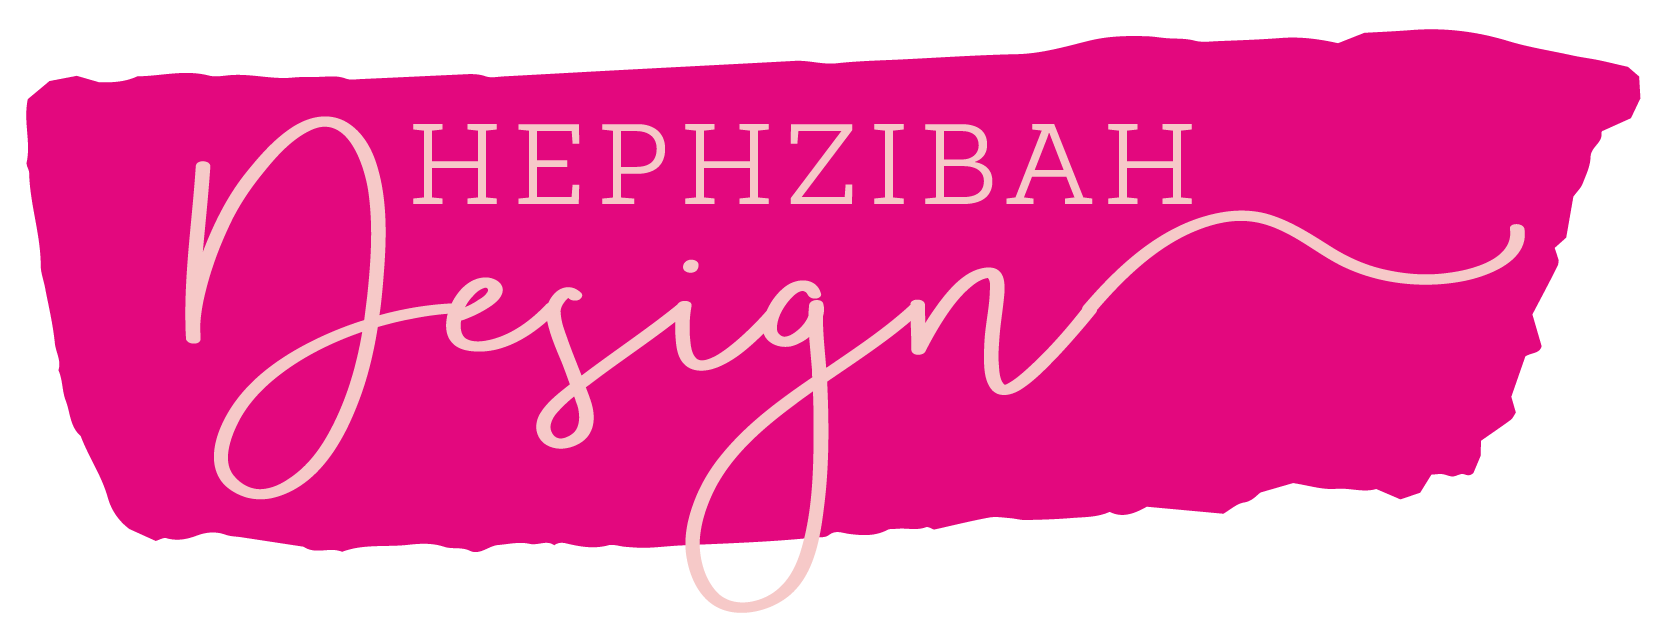 Hephzibah Design - wedding, event, social, business stationery